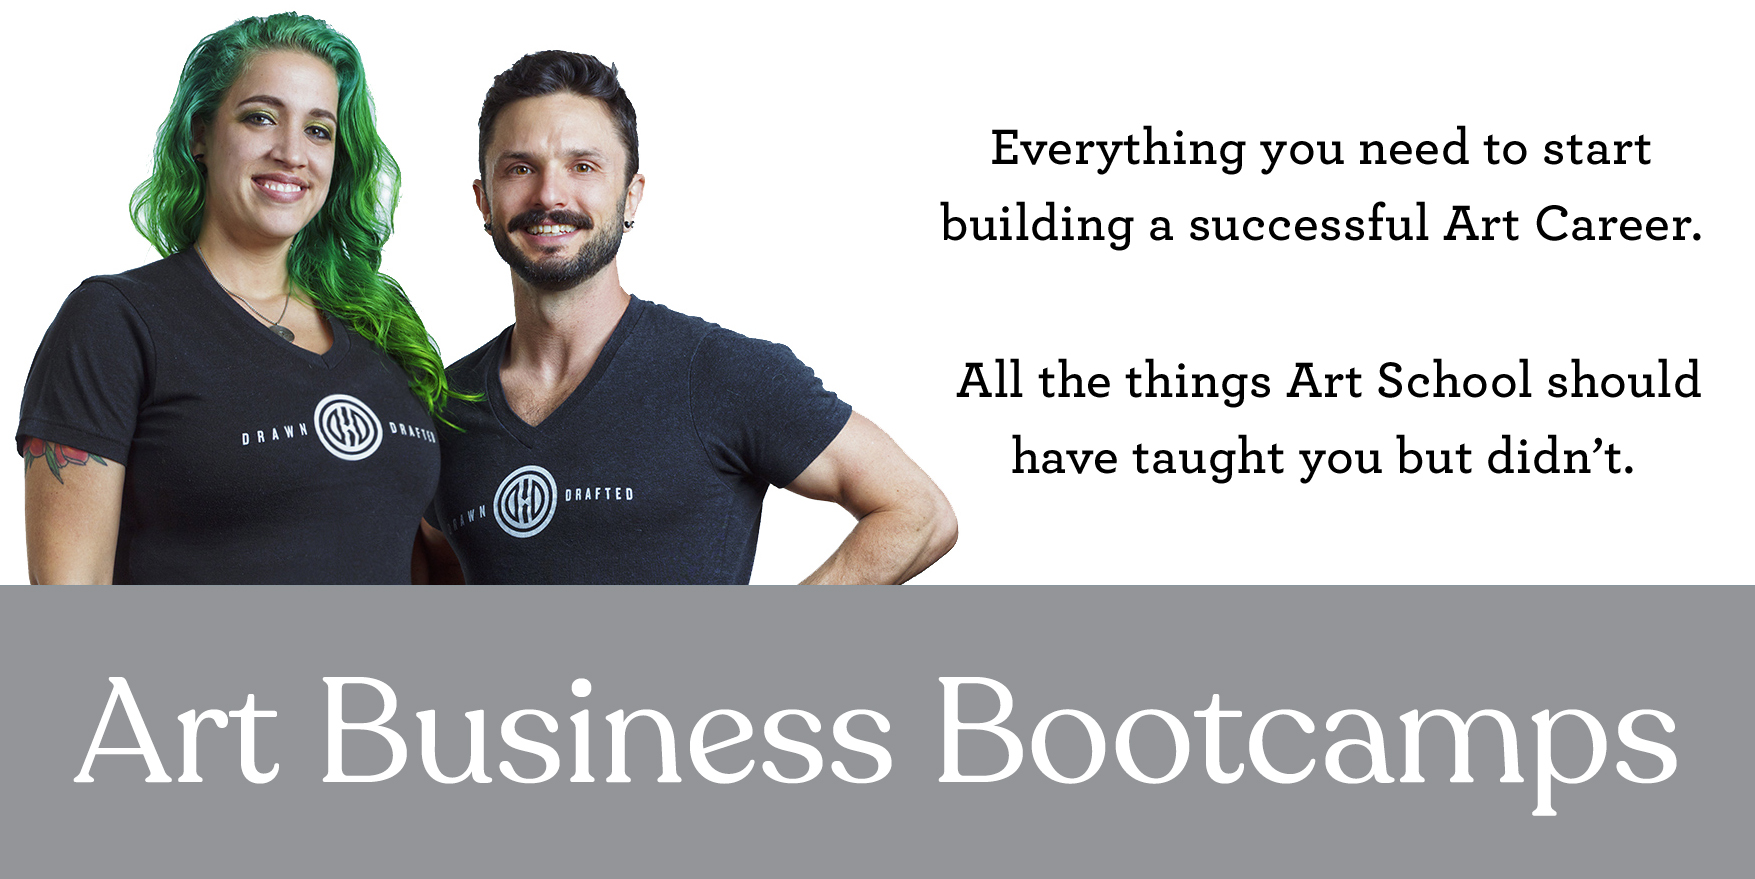 Art Business Bootcamp Header